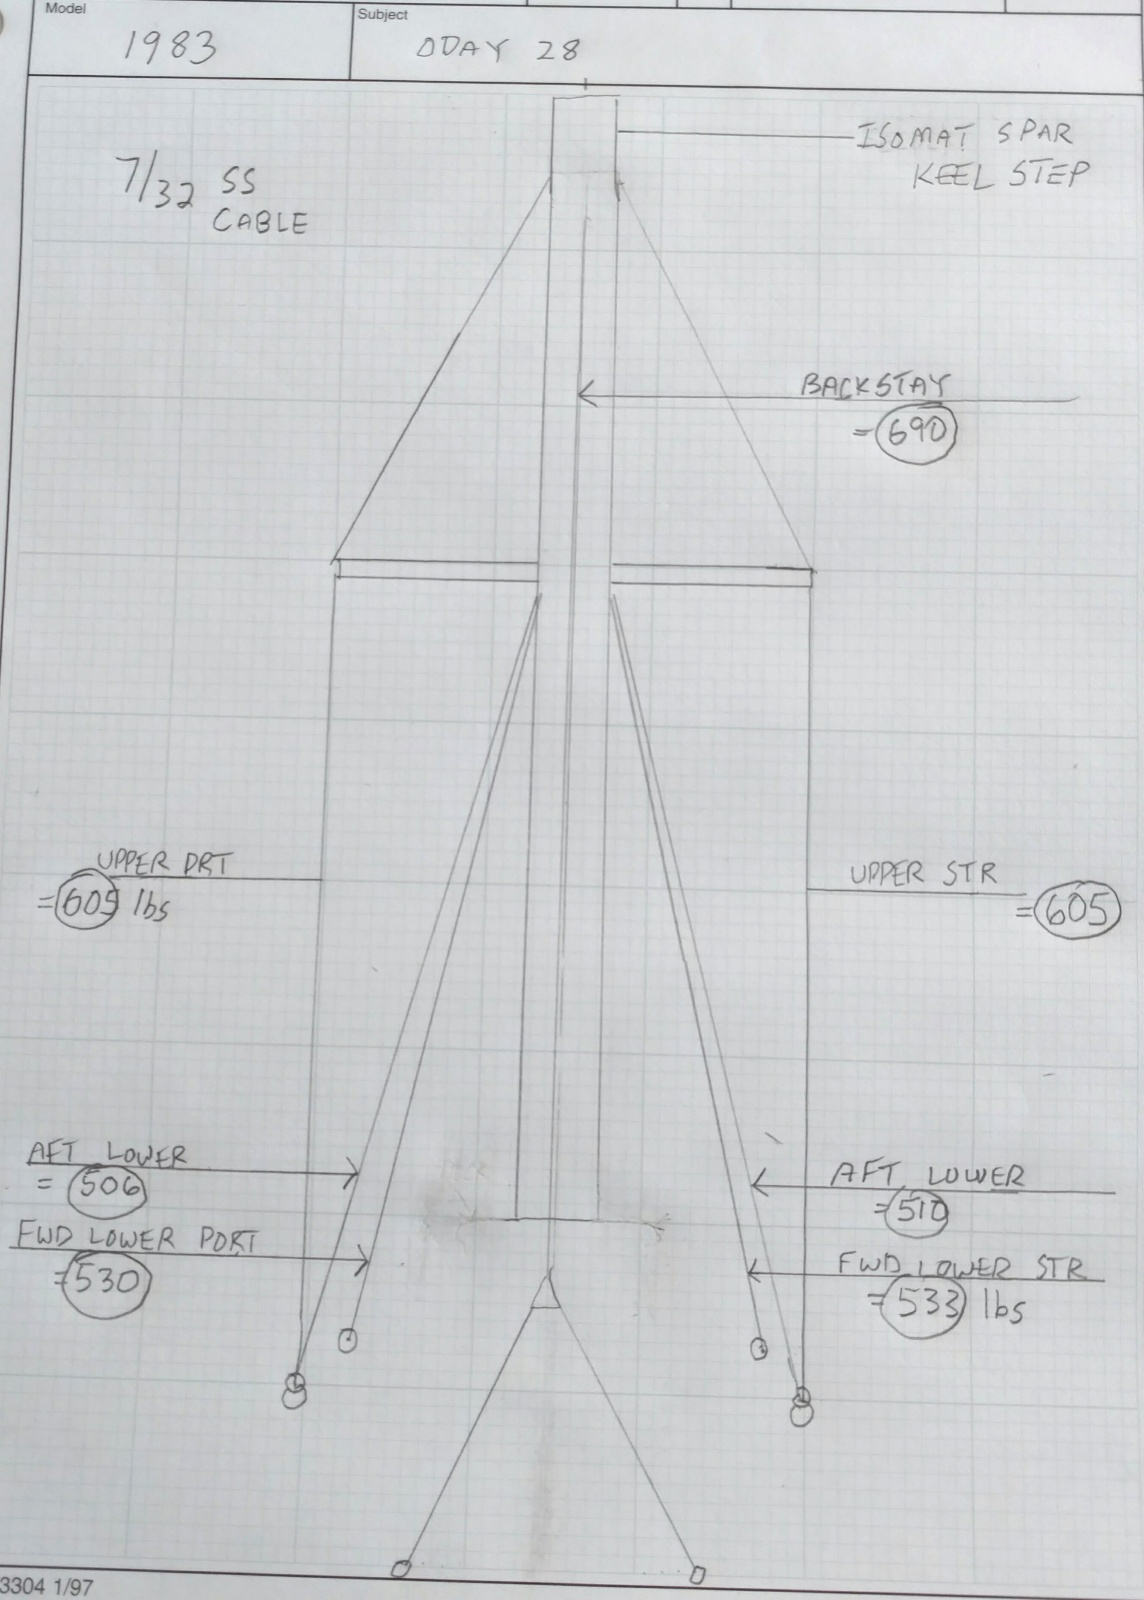 Did I set the tension right on my rigging? - Cruisers & Sailing Forums